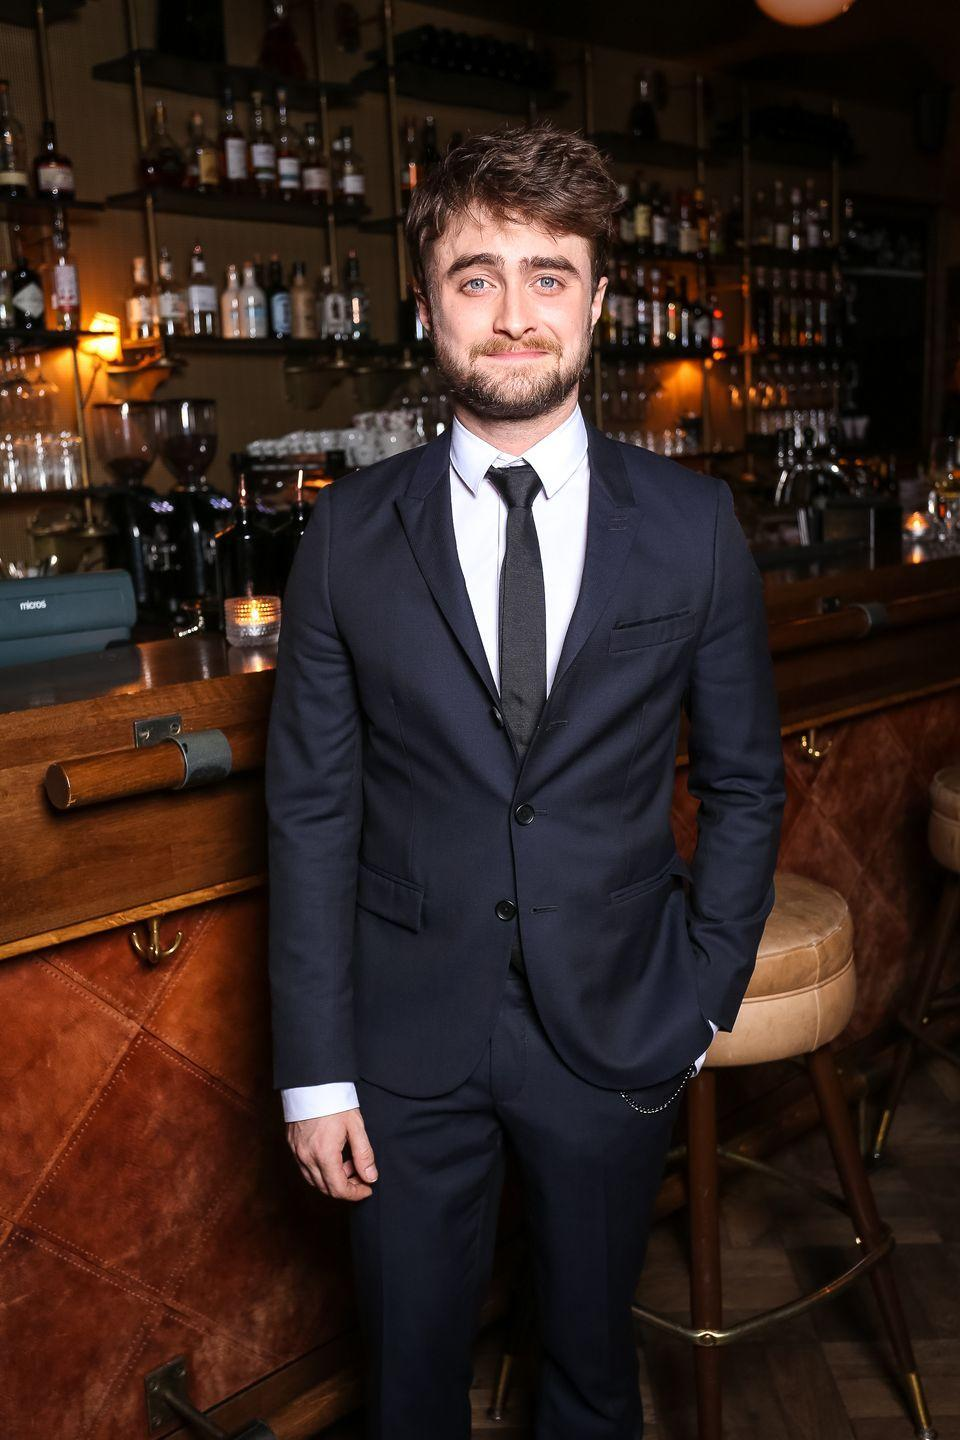 """<p>Radcliffe admitted in an interview with <em><a href=""""http://www.playboy.com/articles/20q-daniel-radcliffe"""" rel=""""nofollow noopener"""" target=""""_blank"""" data-ylk=""""slk:Playboy"""" class=""""link rapid-noclick-resp"""">Playboy</a> </em>he doesn't like watching the 2009 film because, """"I'm just not very good in it. I hate it...my acting is very one-note and I can see I got complacent and what I was trying to do just didn't come across. My best film is the fifth one [<em>Order of the Phoenix</em>] because I can see a progression."""" </p>"""